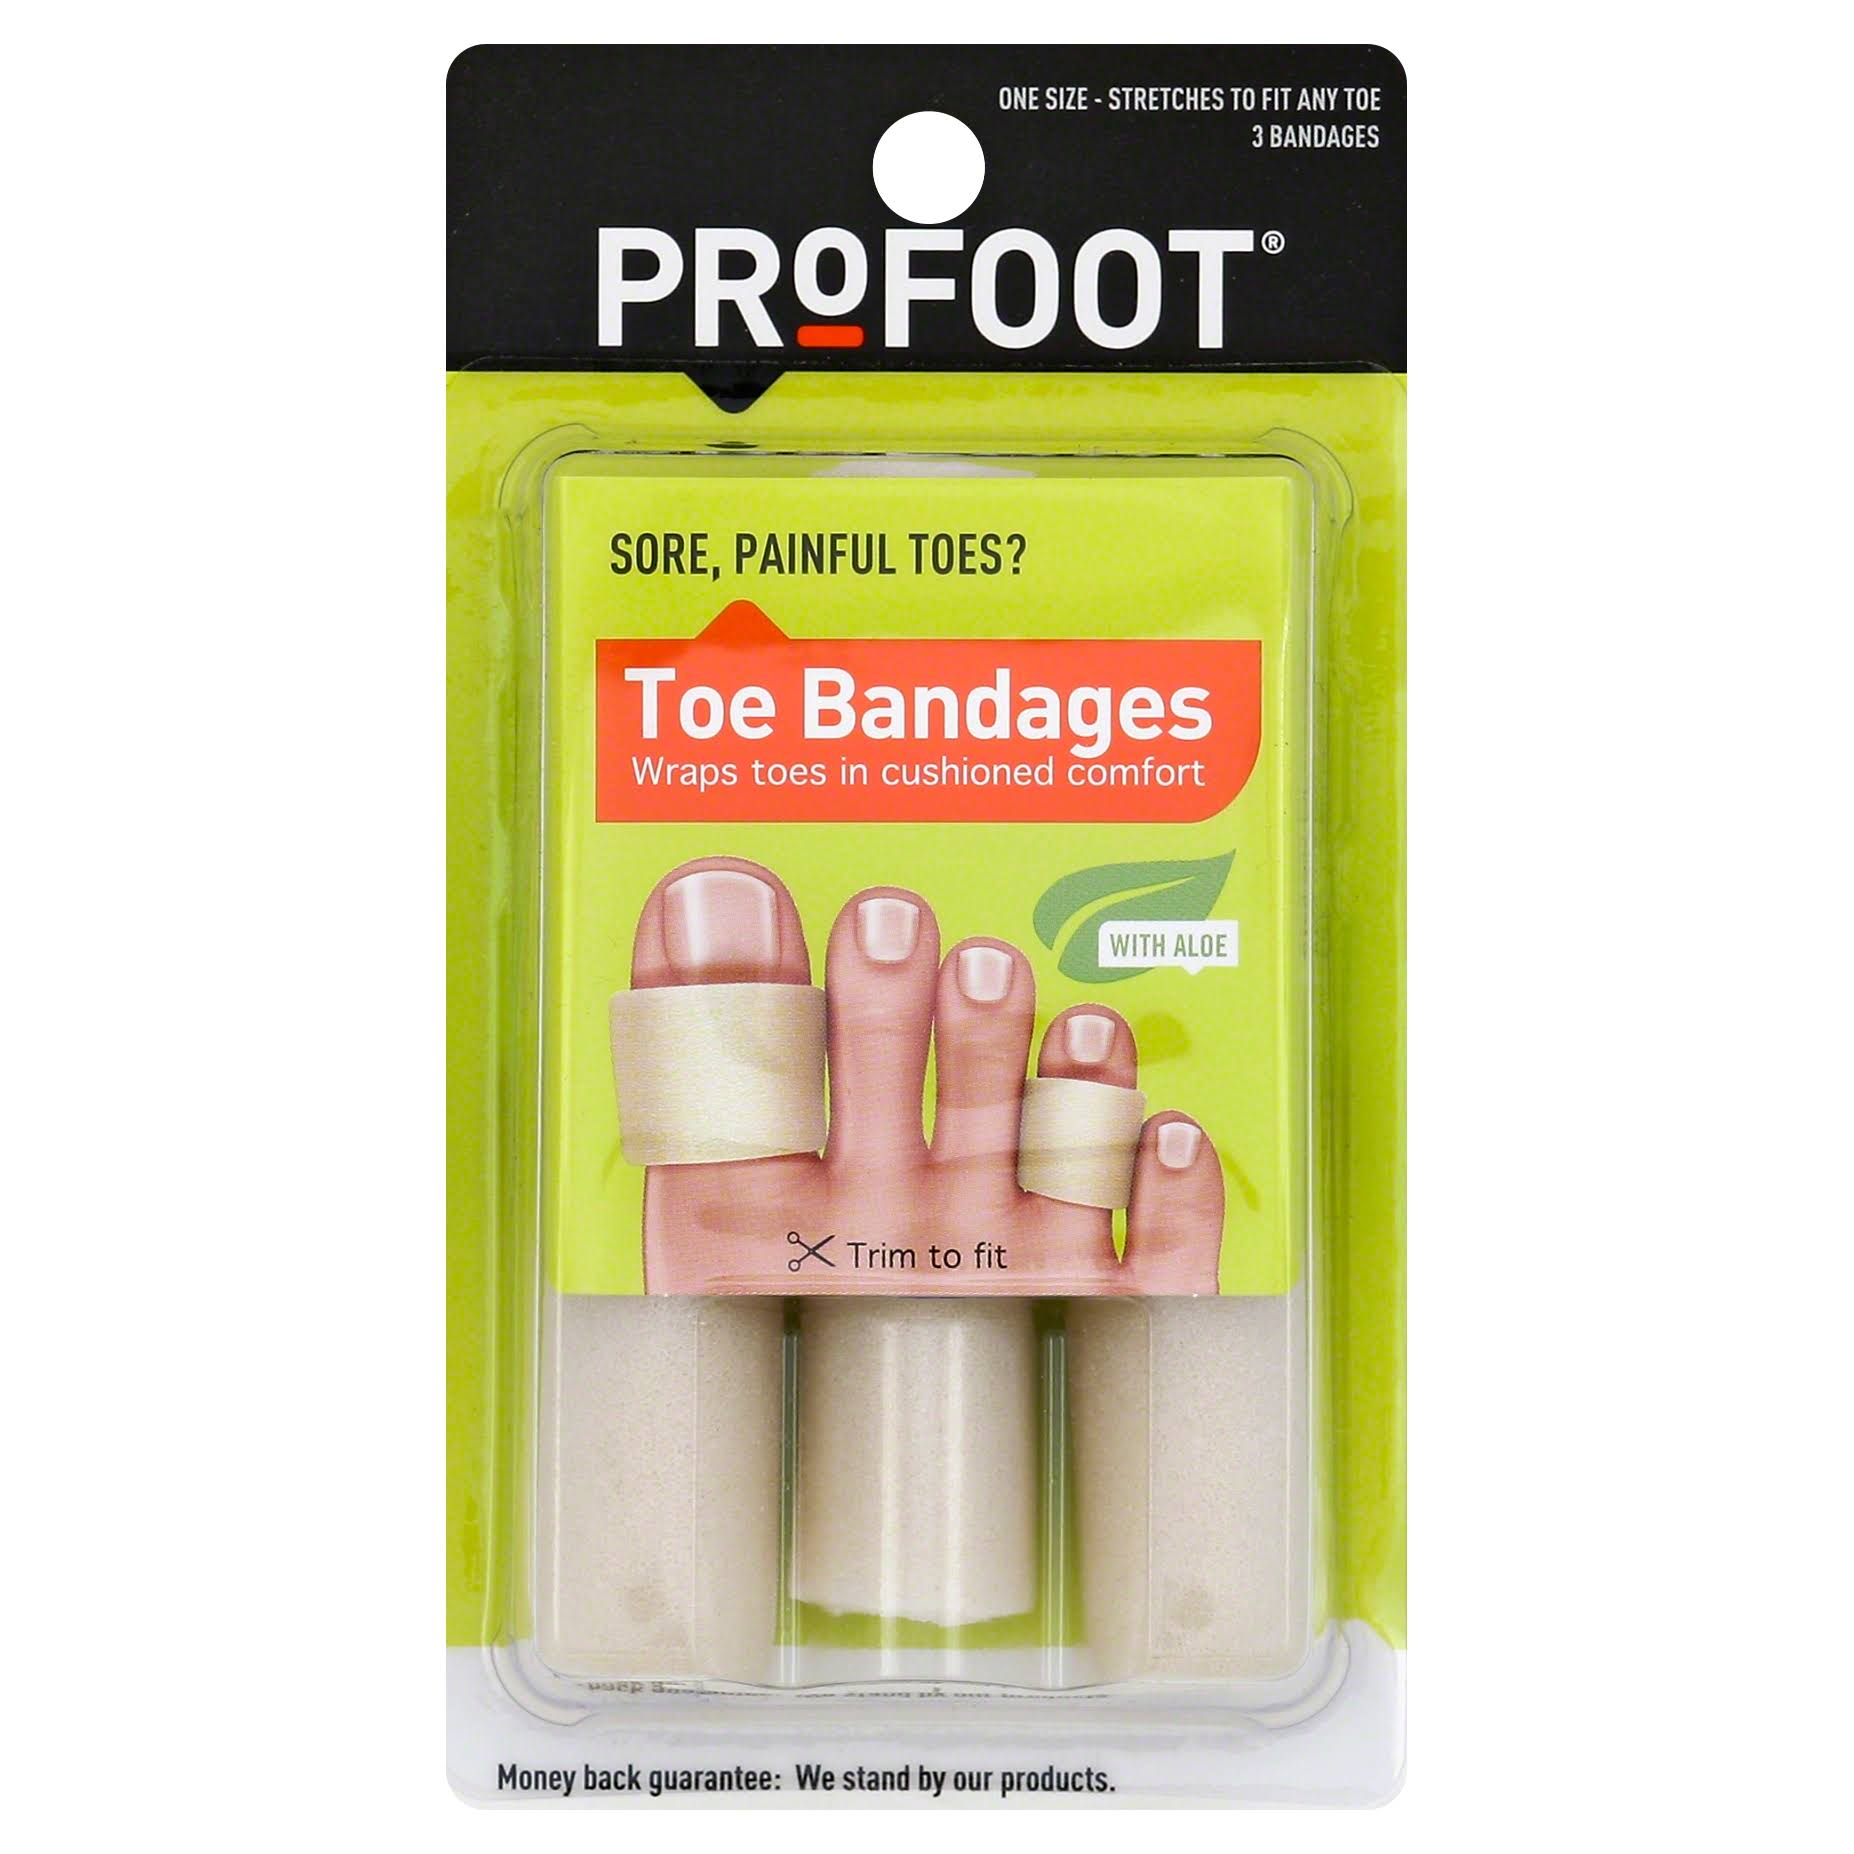 Profoot Toe Bandages, with Aloe, One Size - 3 bandages